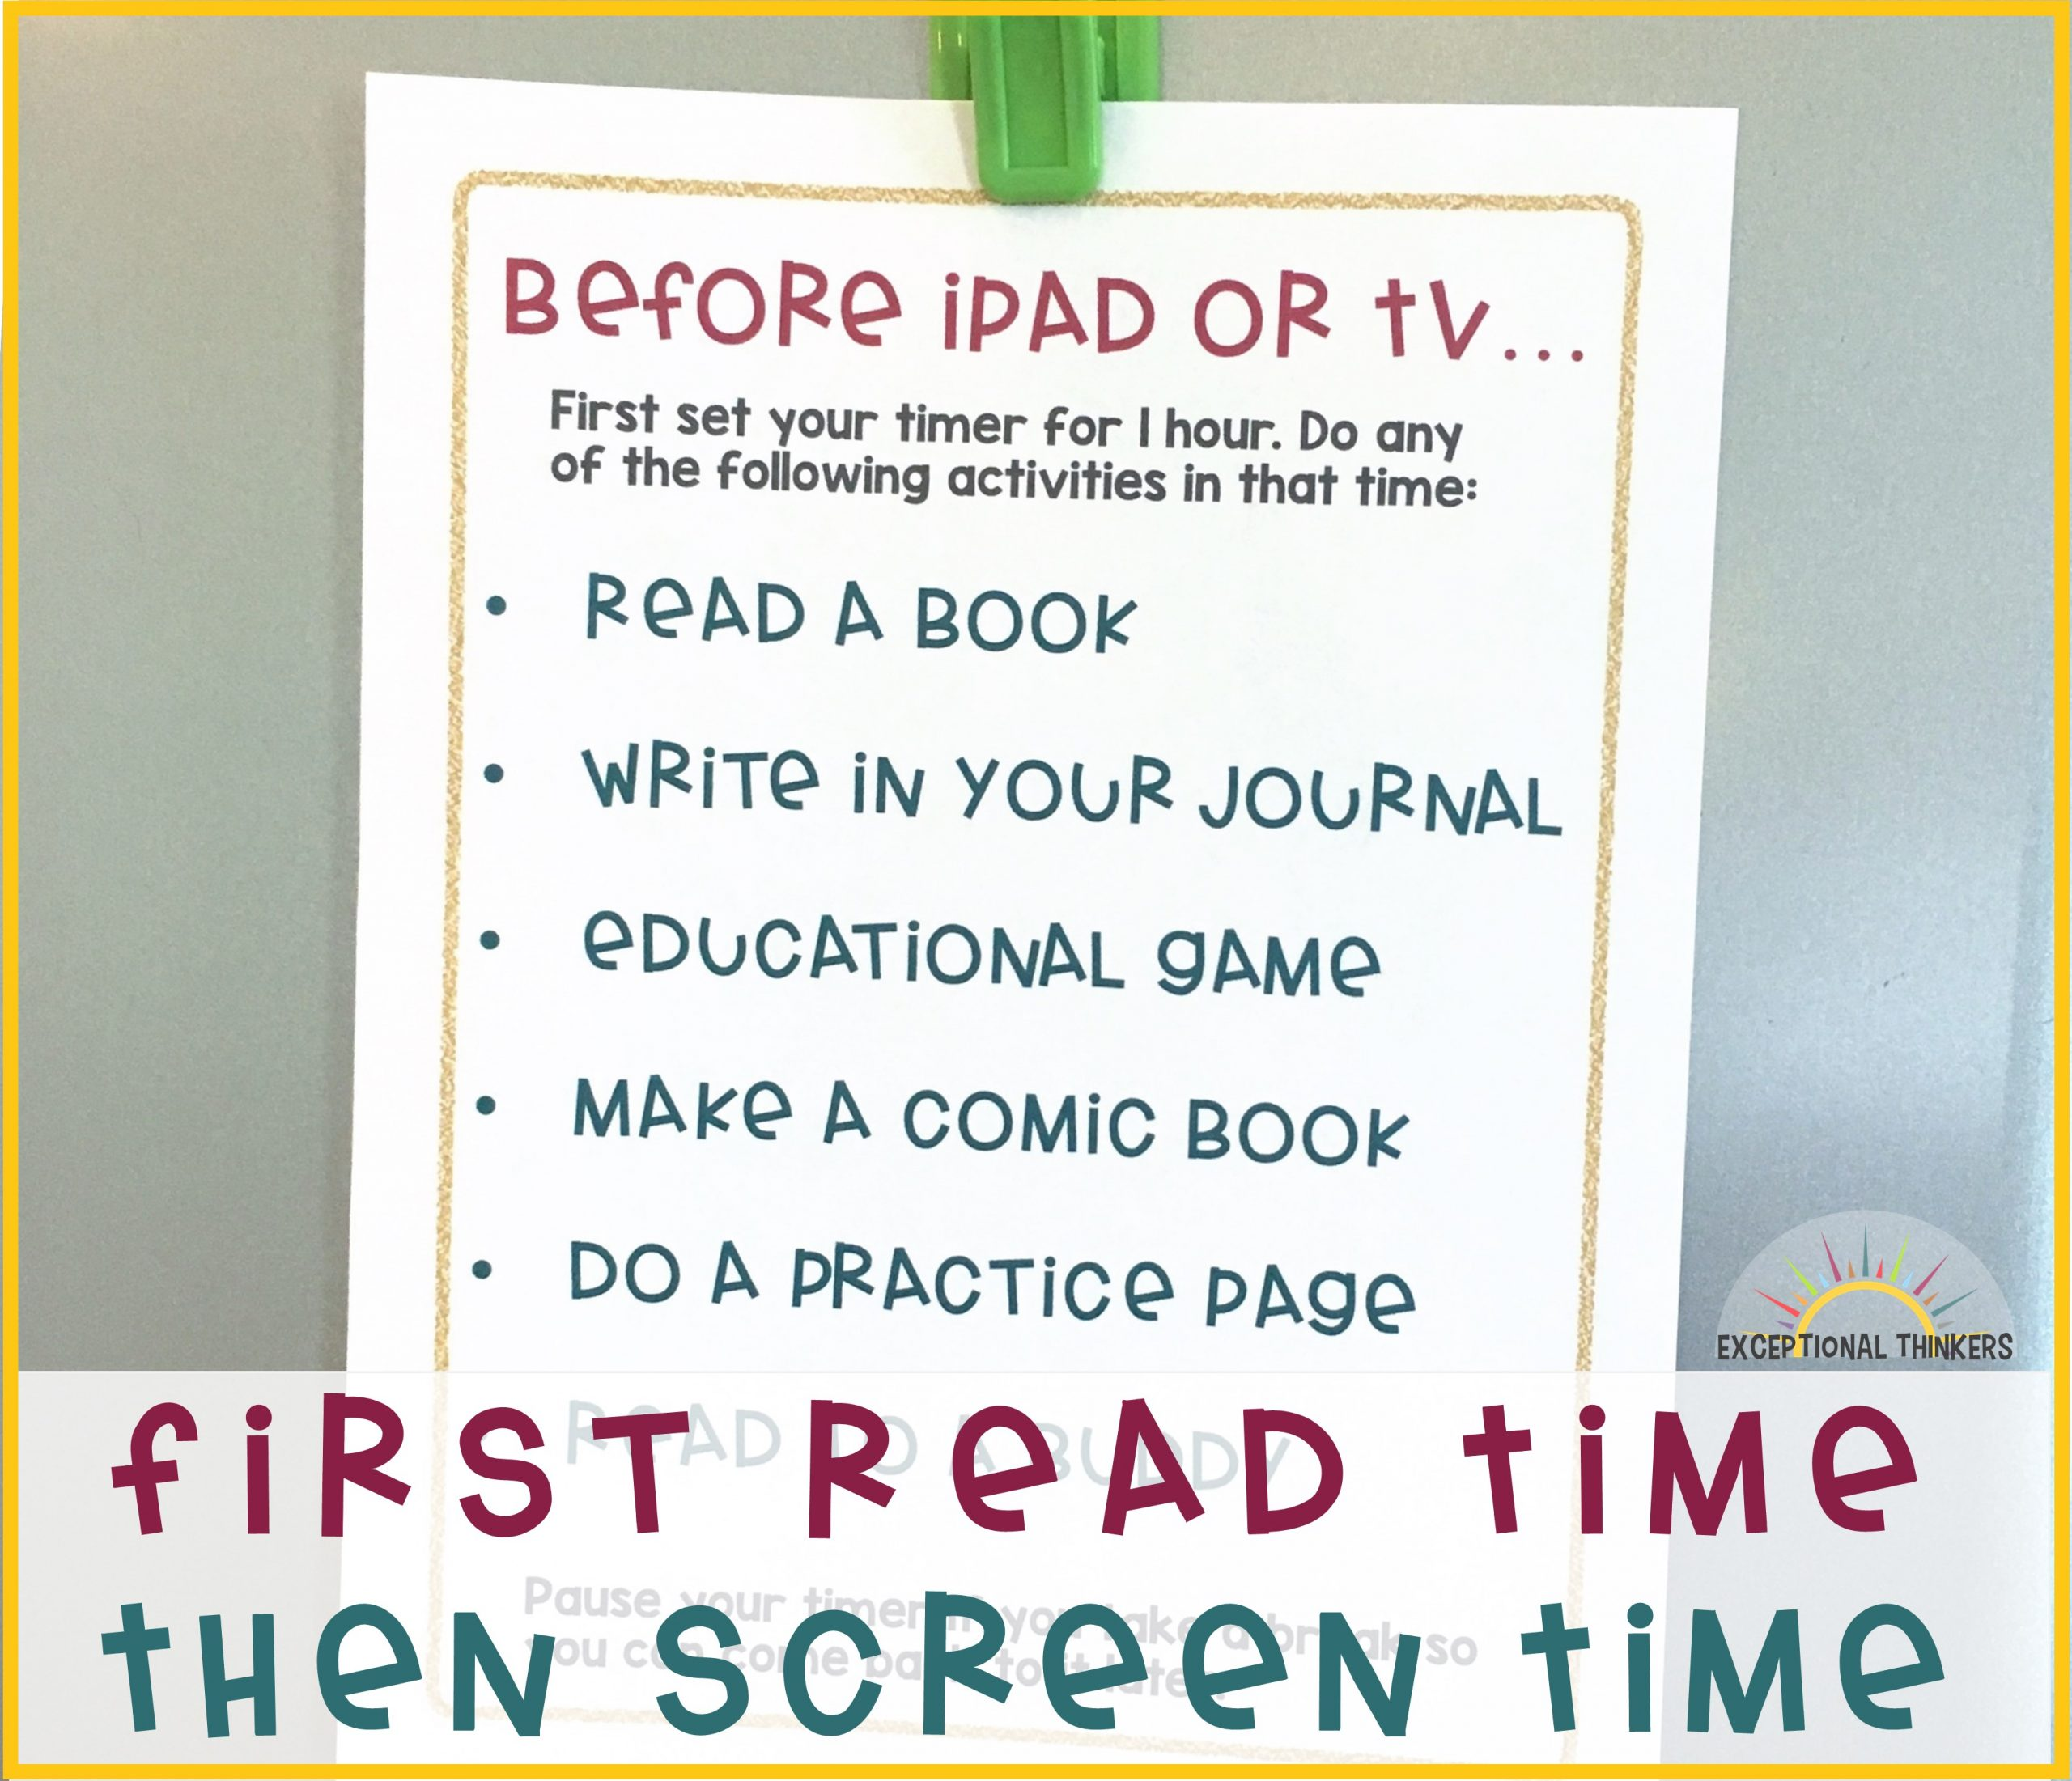 First READ Time, Then SCREEN Time